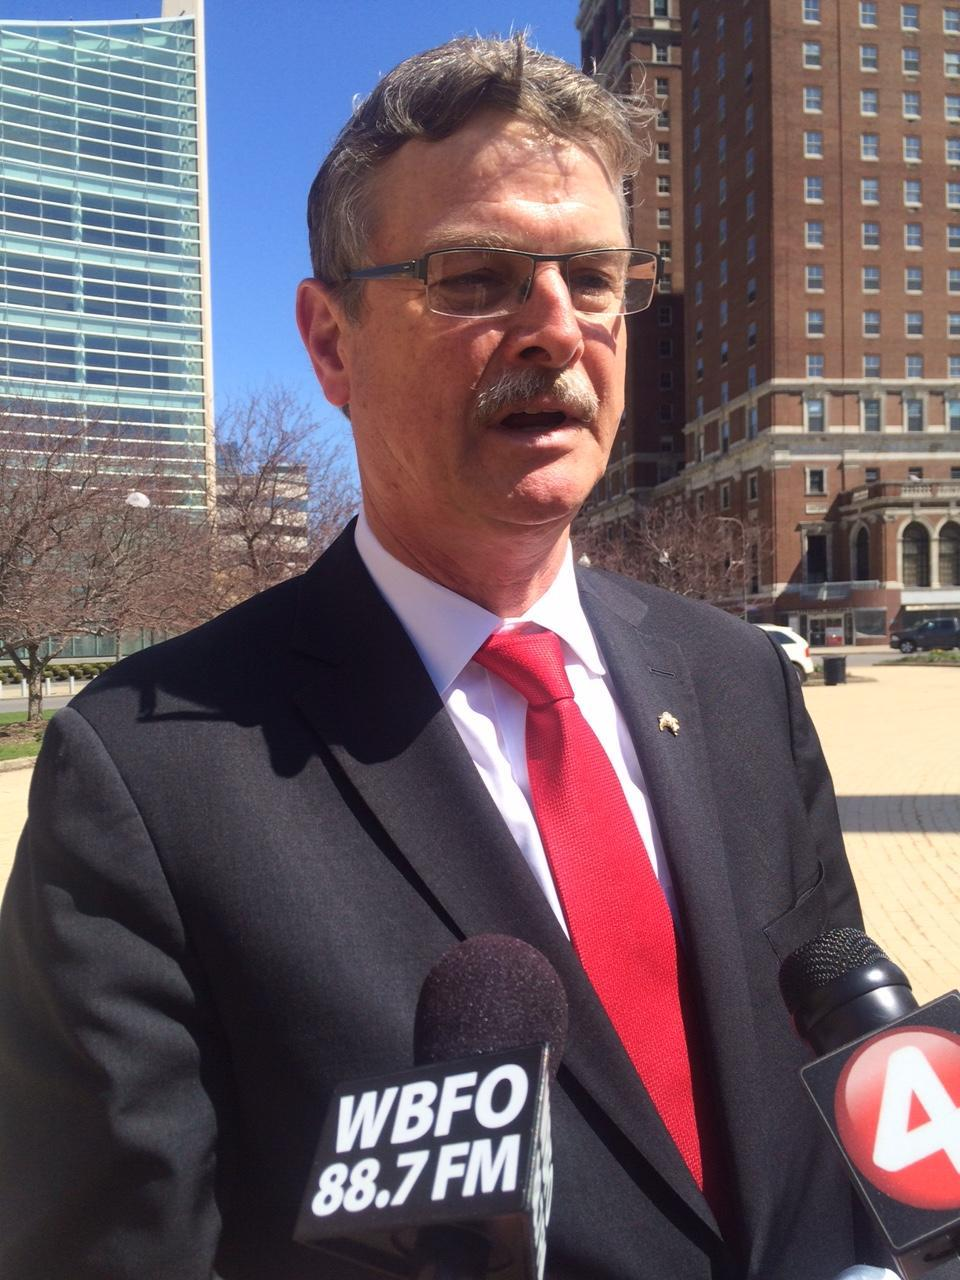 Caption: Niagara Falls (N.Y.) Mayor Paul Dyster, Credit: WBFO file photo